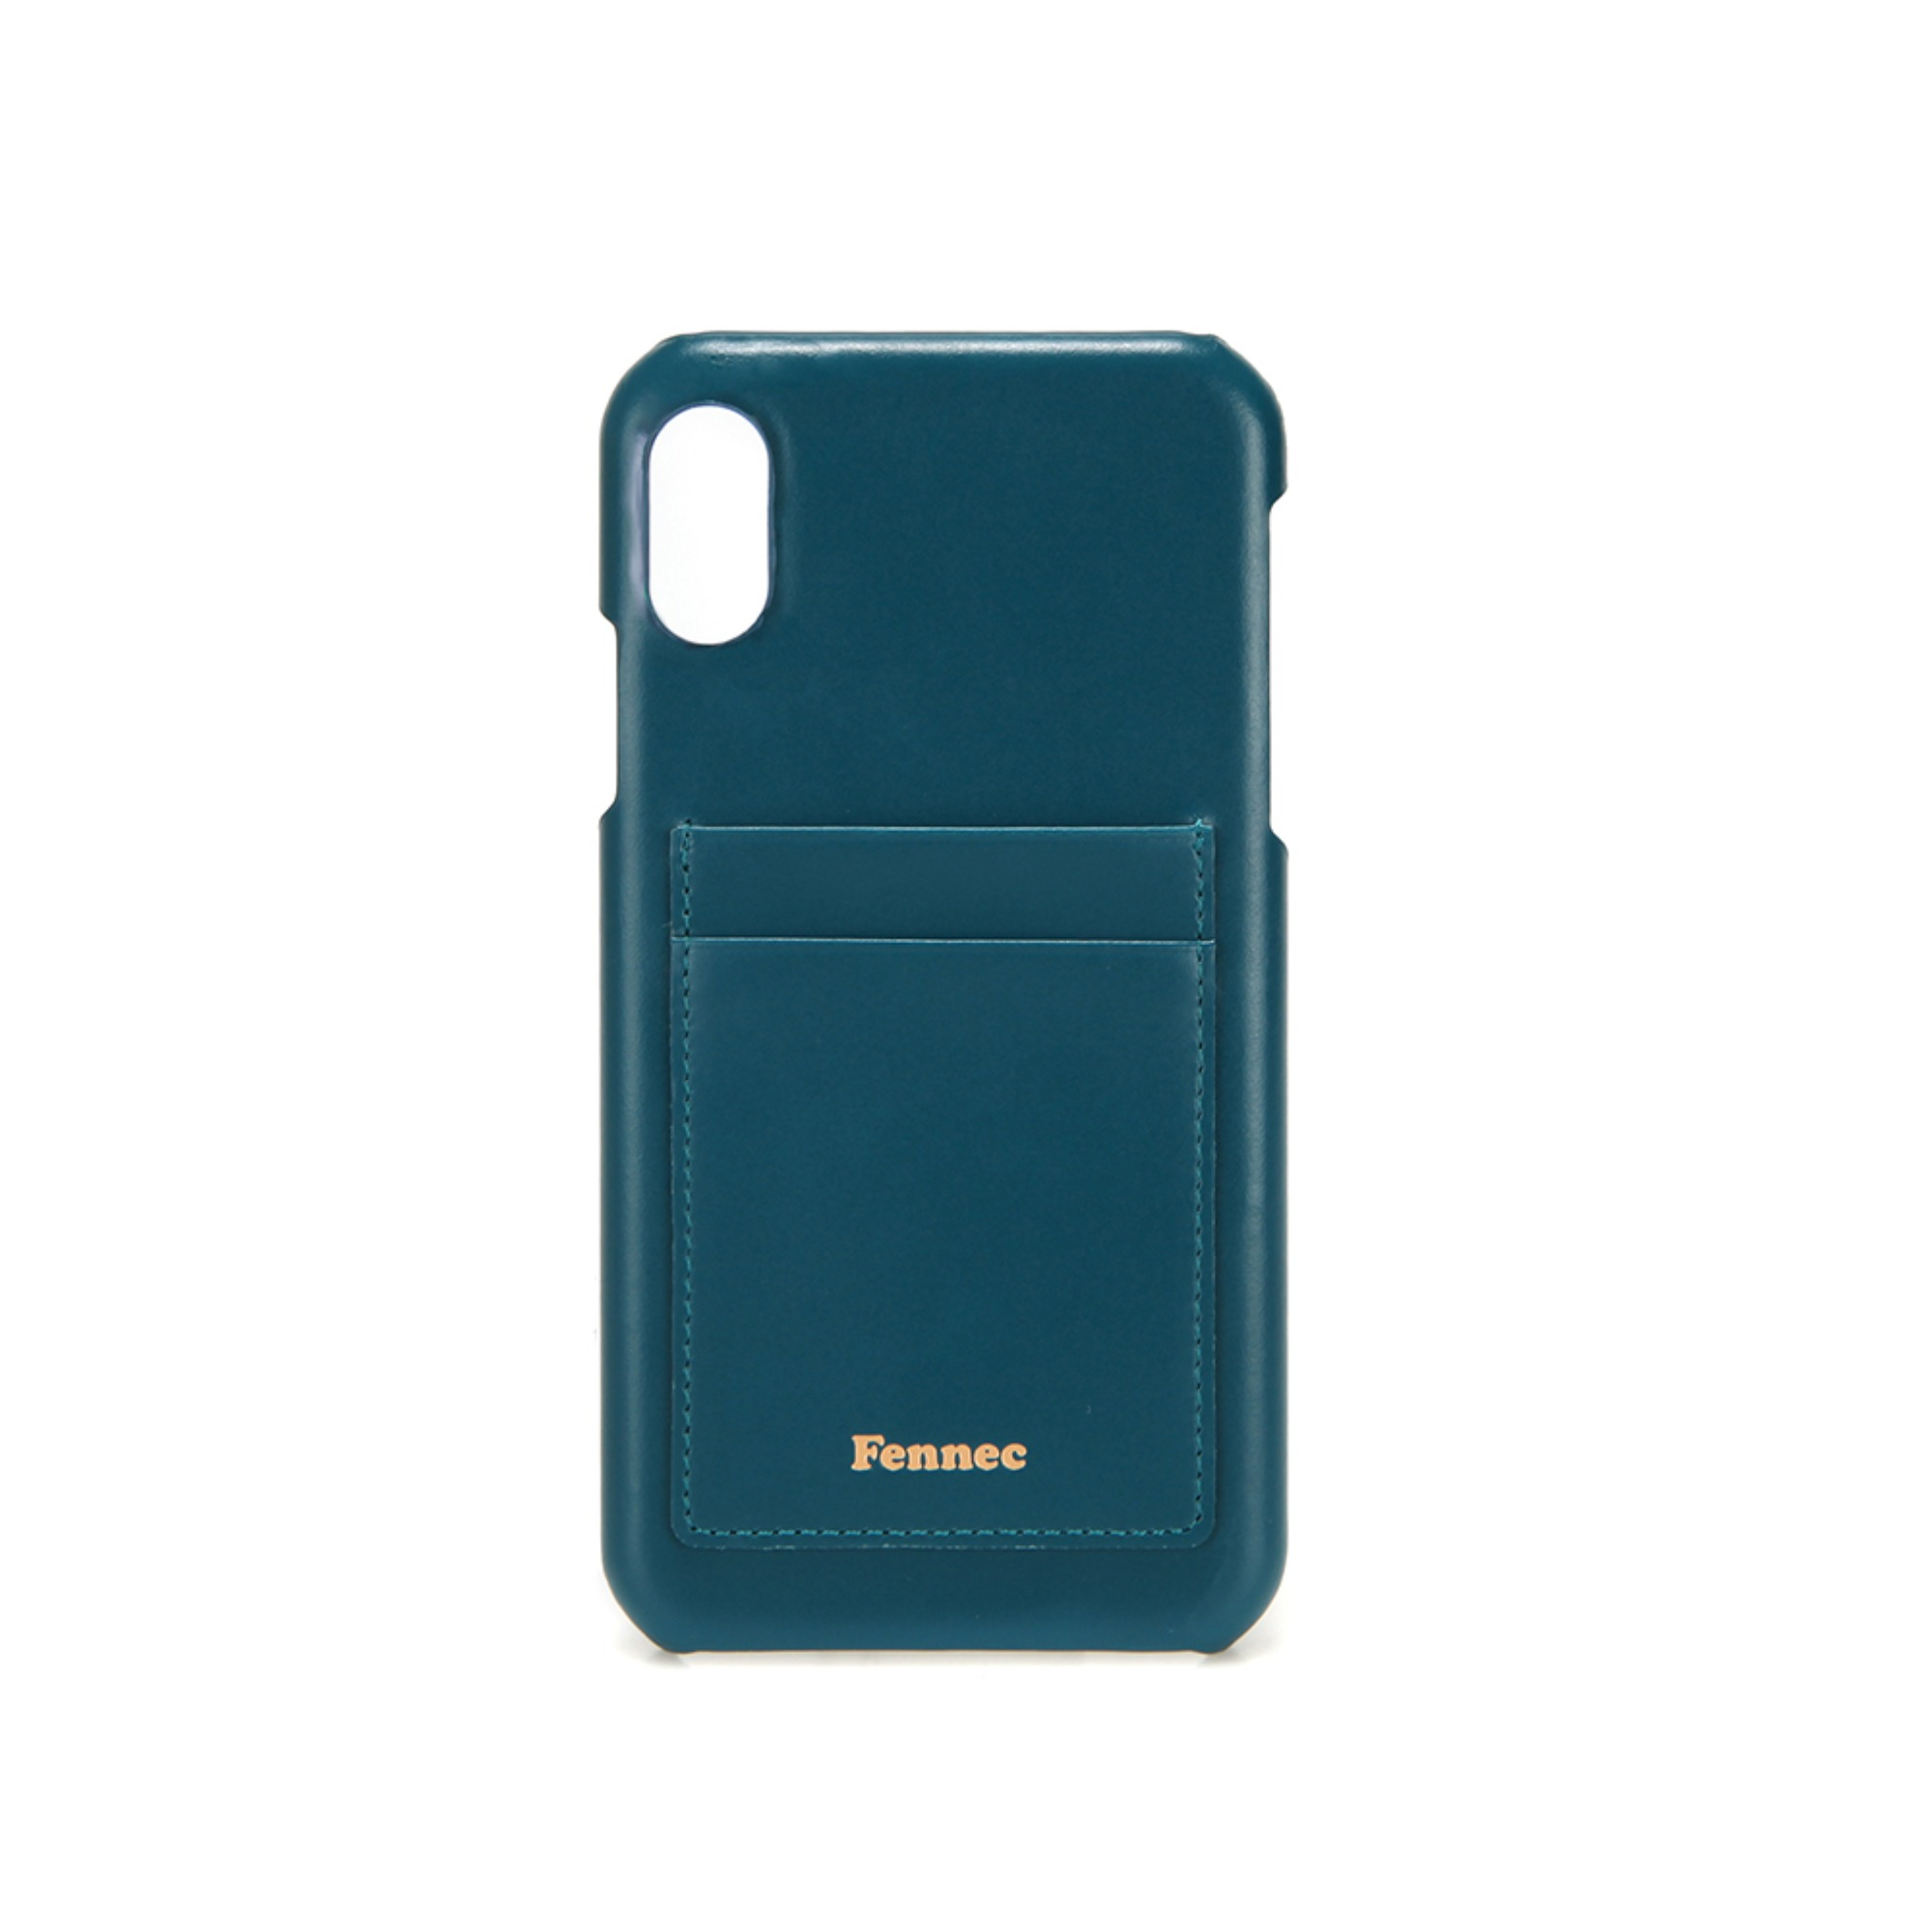 [DISCONTINUE] LEATHER iPHONE XR CARD CASE - SEAGREEN